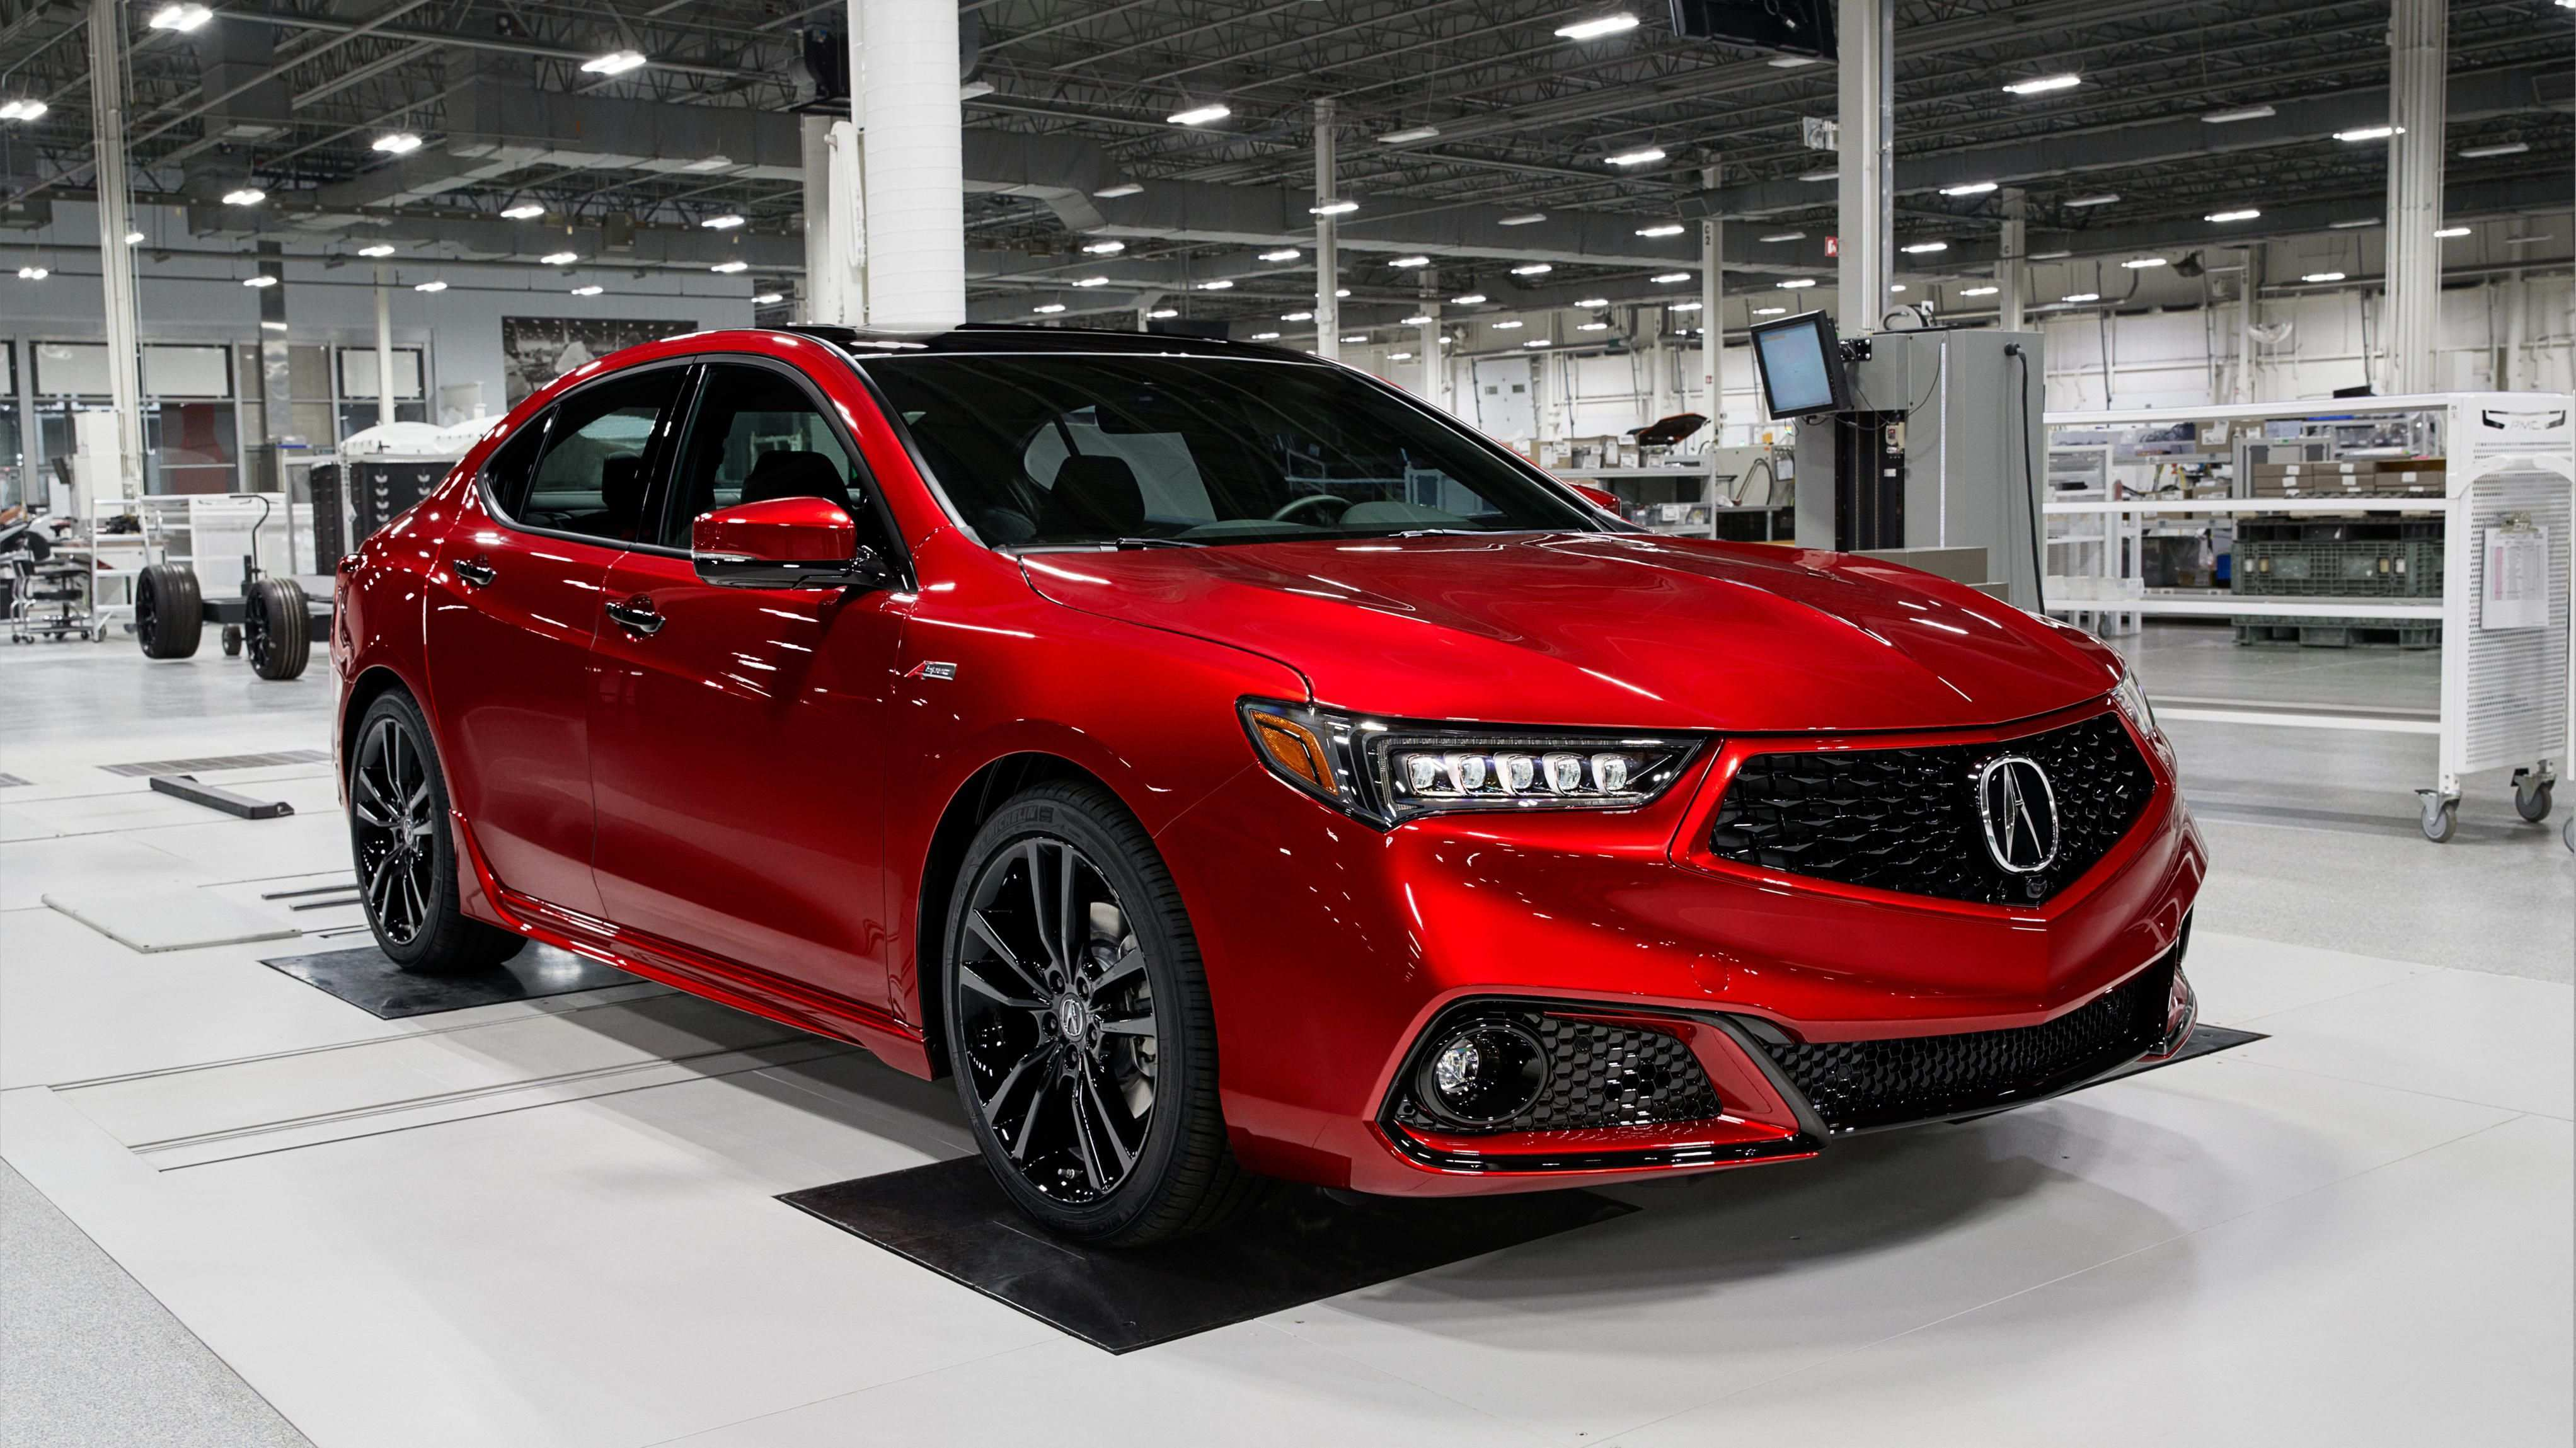 85 All New When Do 2020 Acura Cars Come Out Redesign and Concept by When Do 2020 Acura Cars Come Out